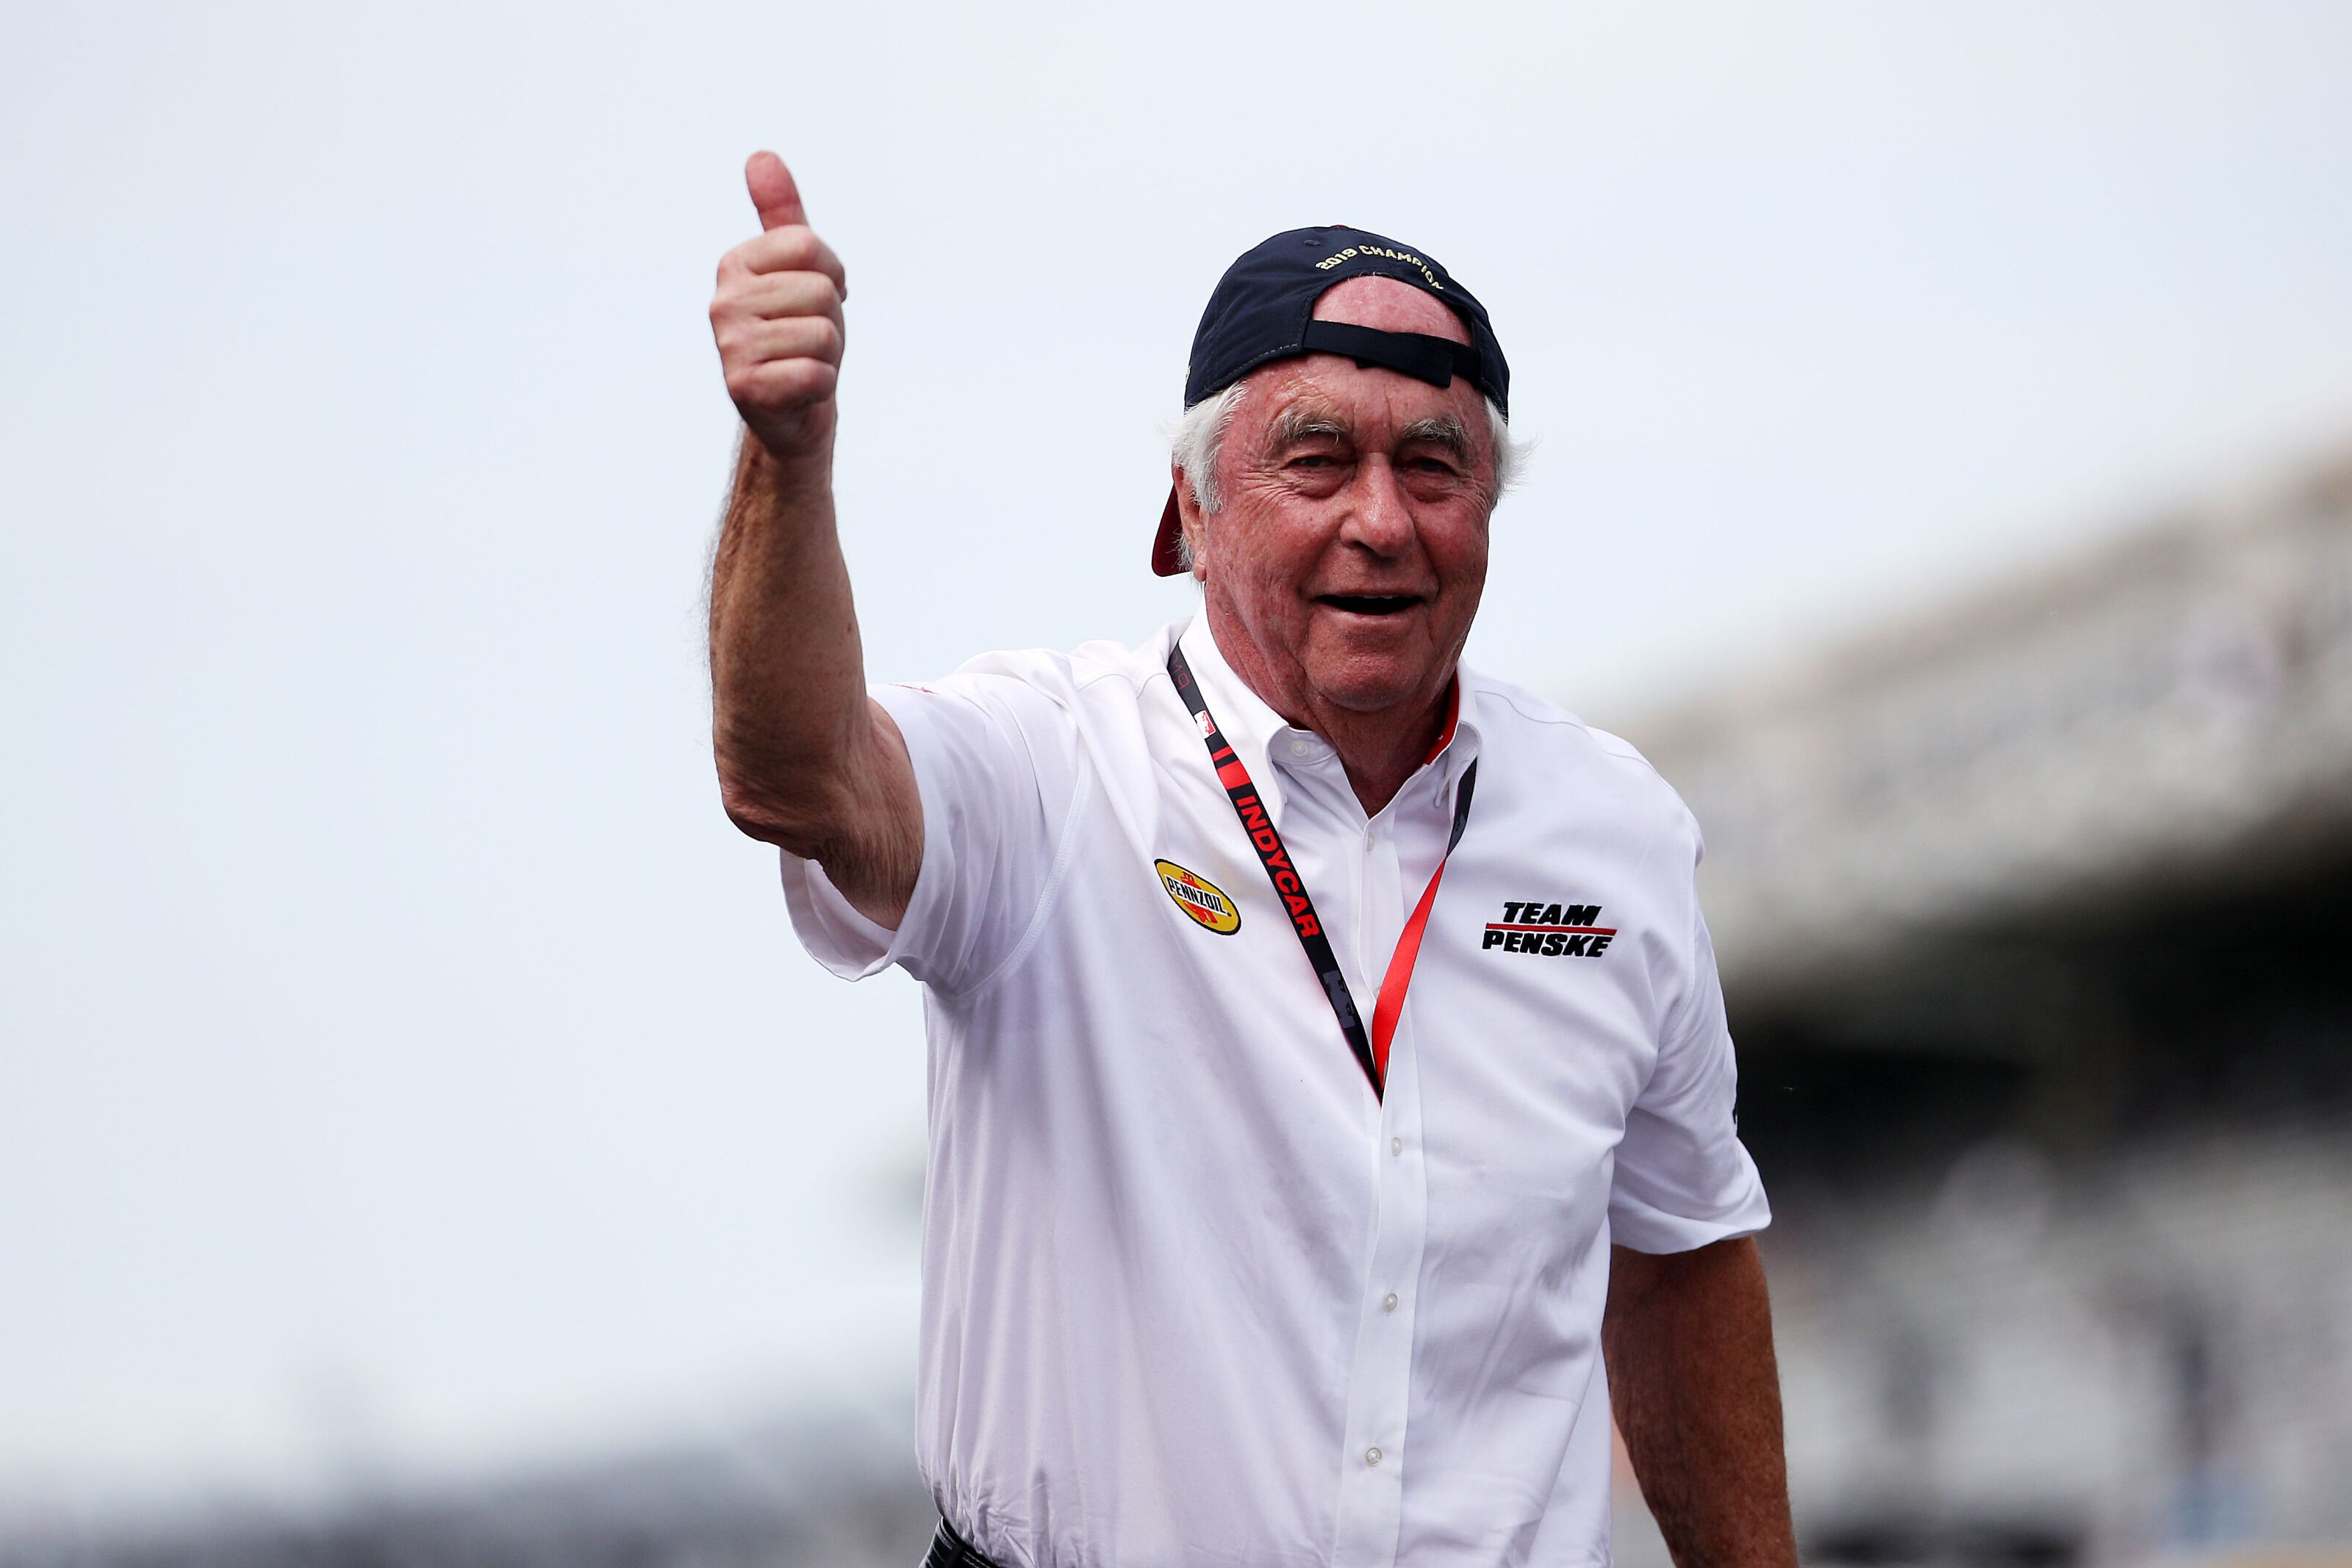 Formula 1: Is there any truth to Roger Penske Mercedes rumors?